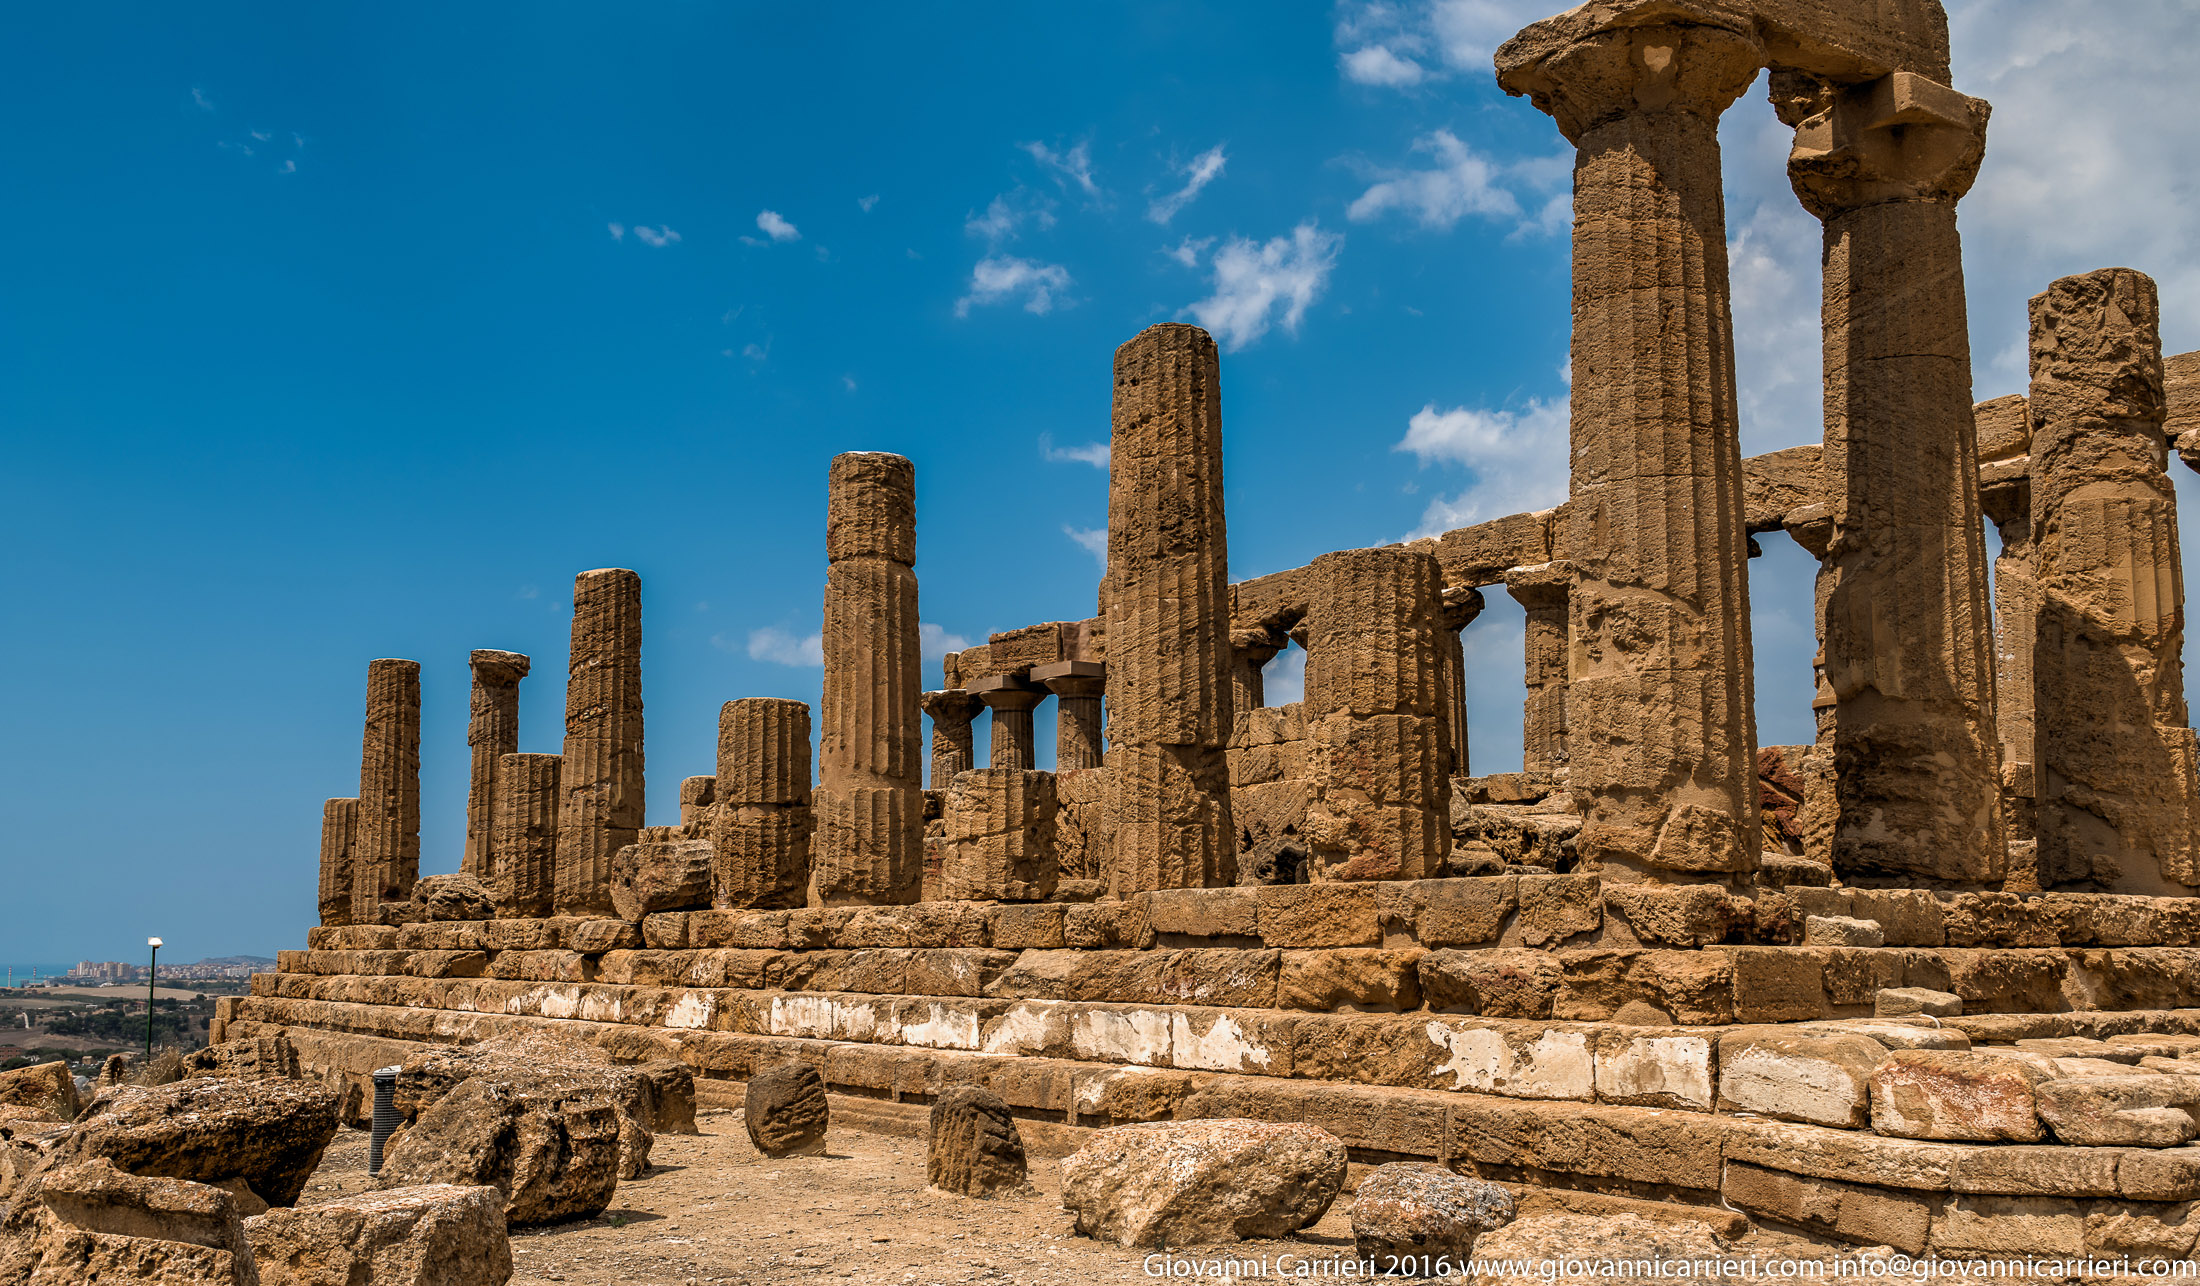 The temple of Juno in Valley of the Temples